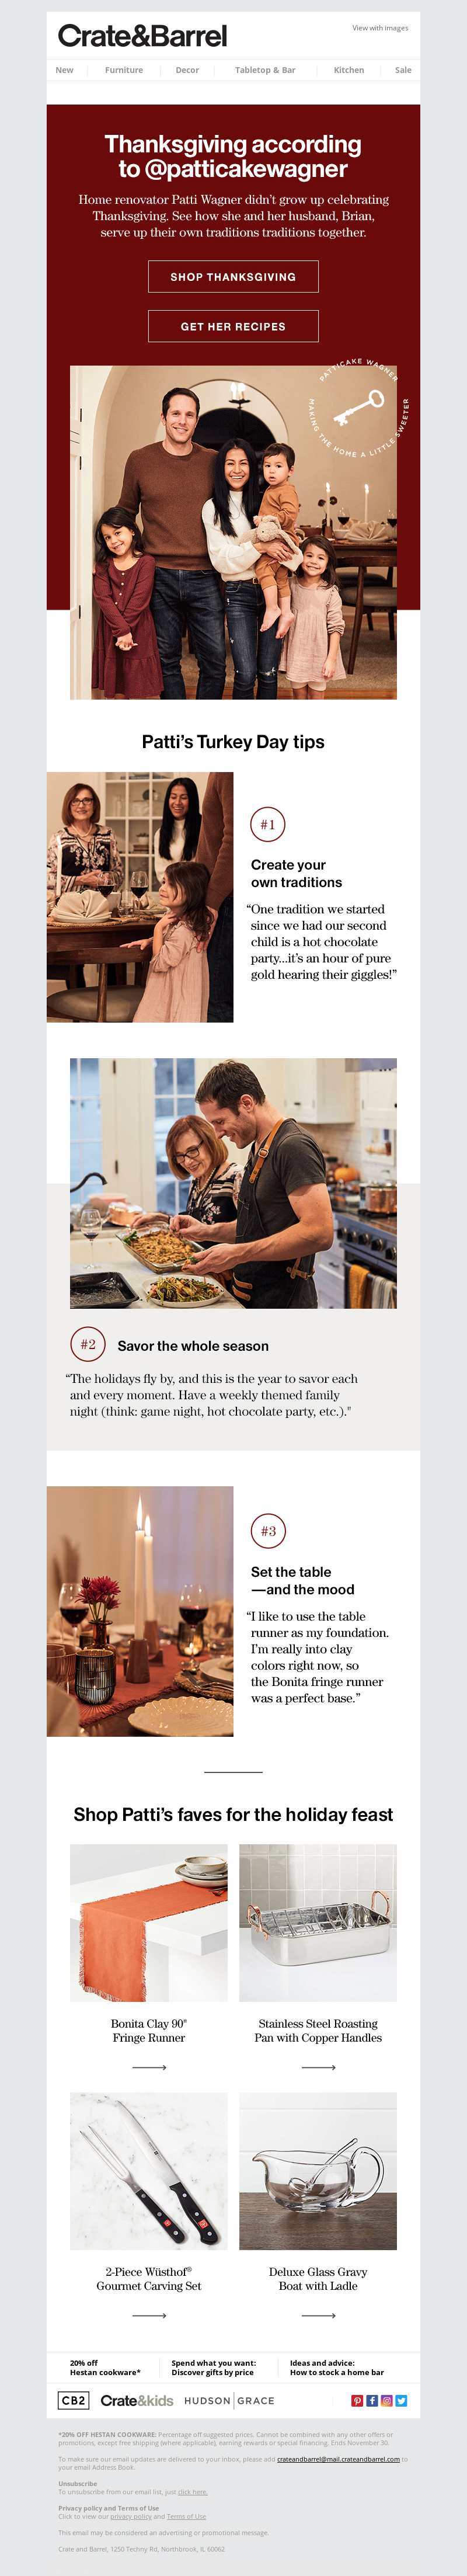 Funny Thanksgiving email from Crate and Barrel